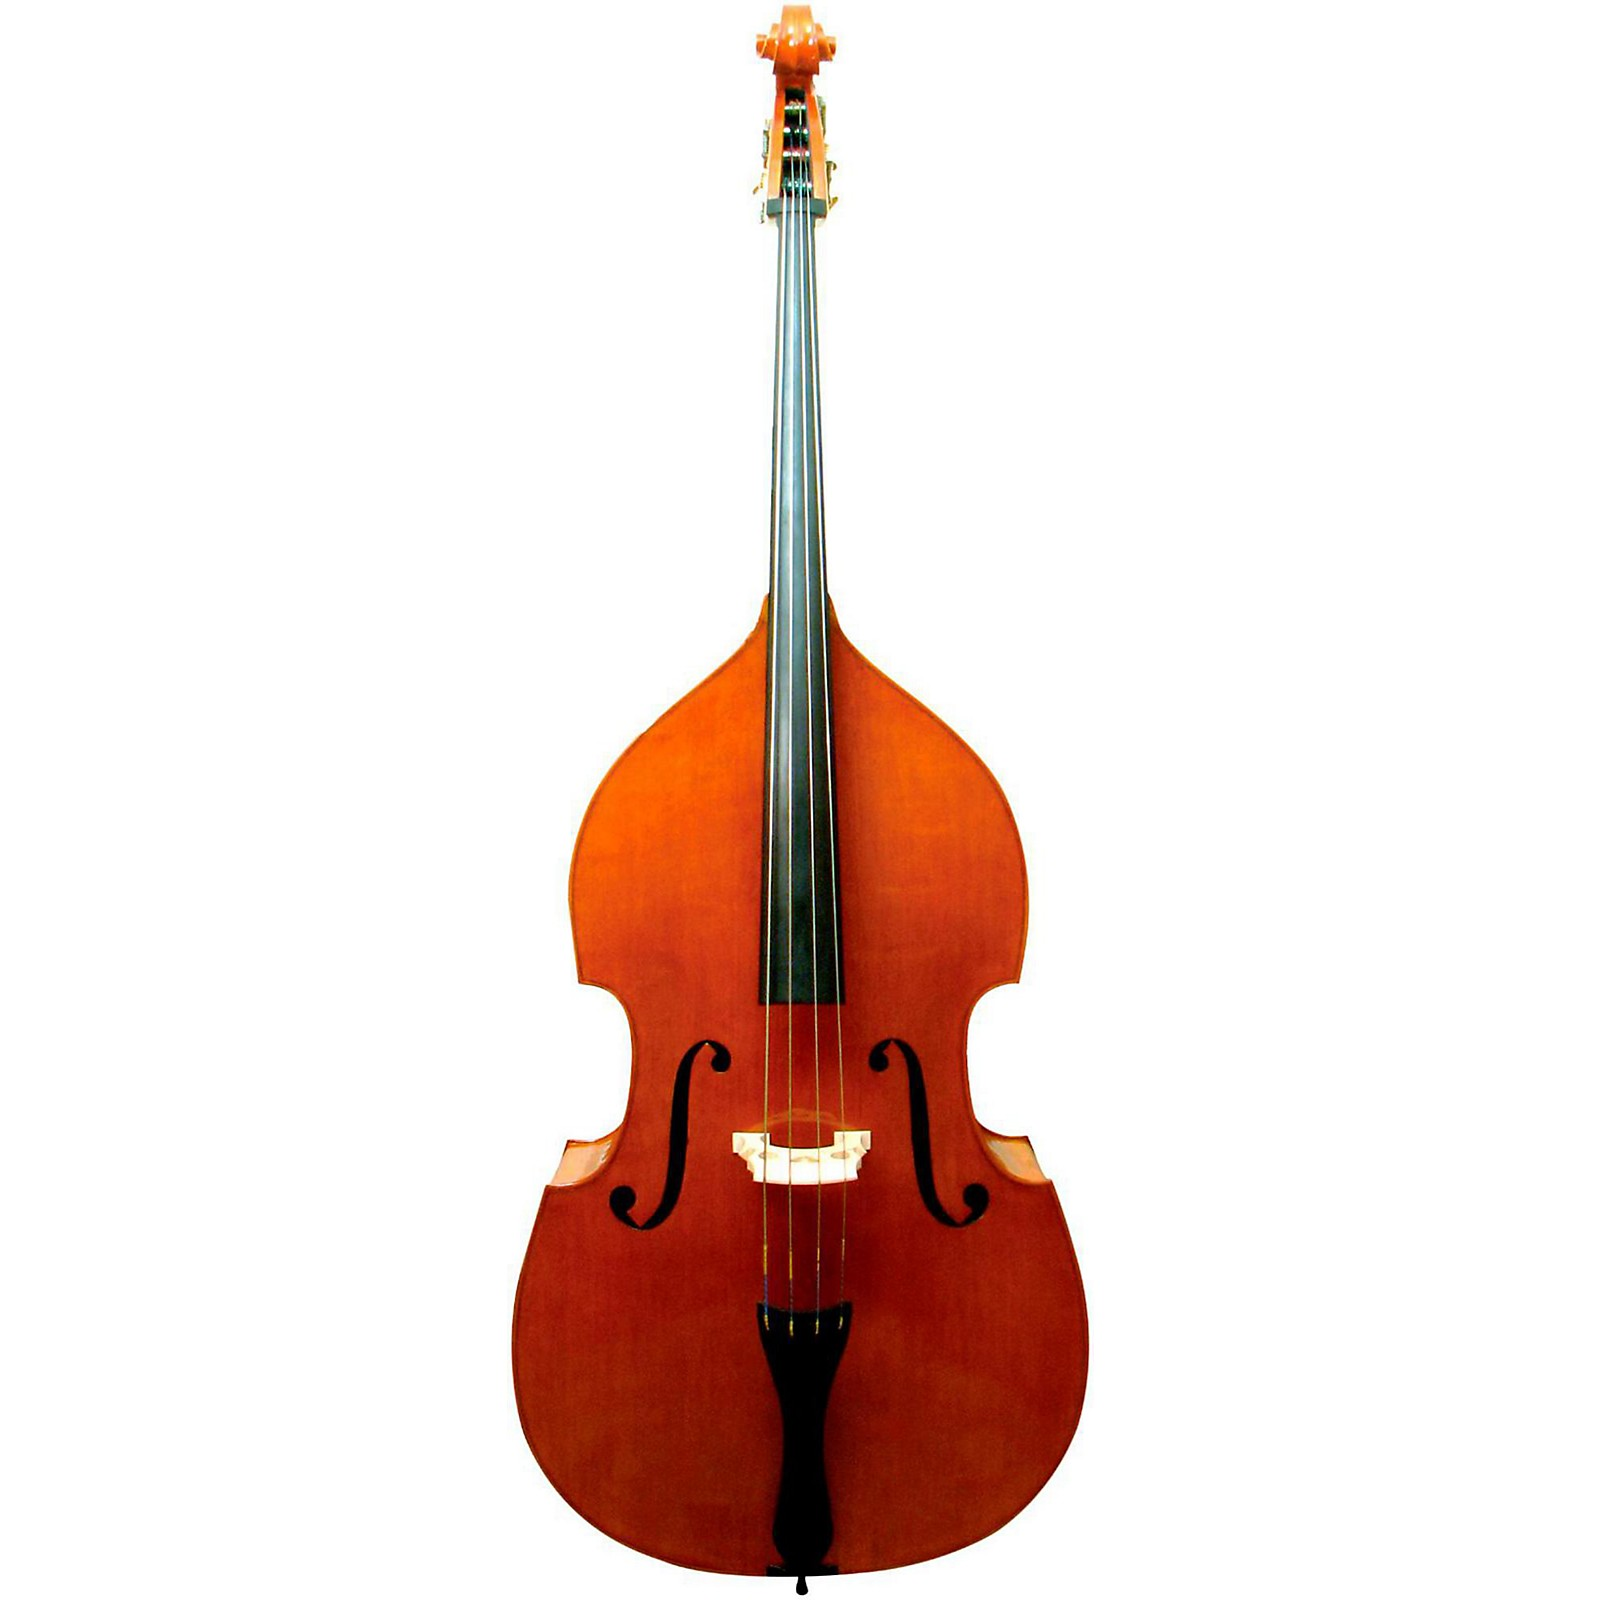 Maple Leaf Strings Model 140 Craftsman Collection Stradivarius Double Bass